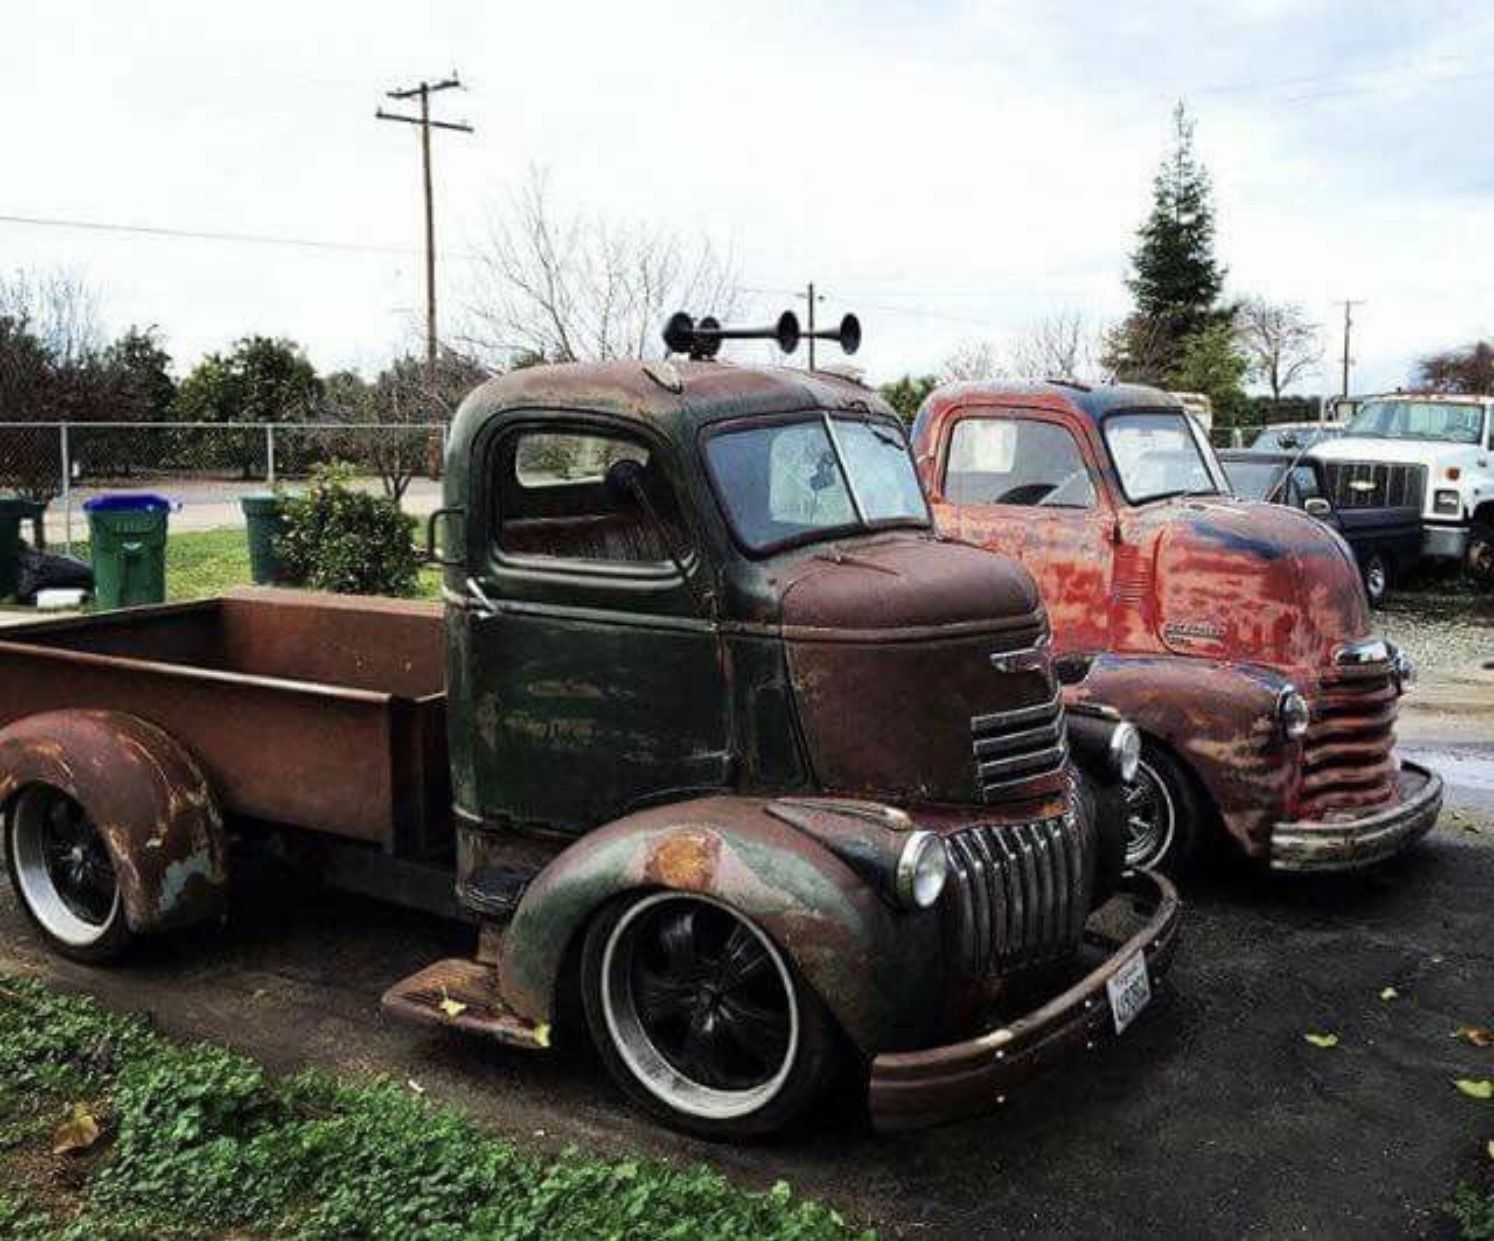 Pin by warren kruger on Trucks | Pinterest | Rats, Vehicle and Chevrolet